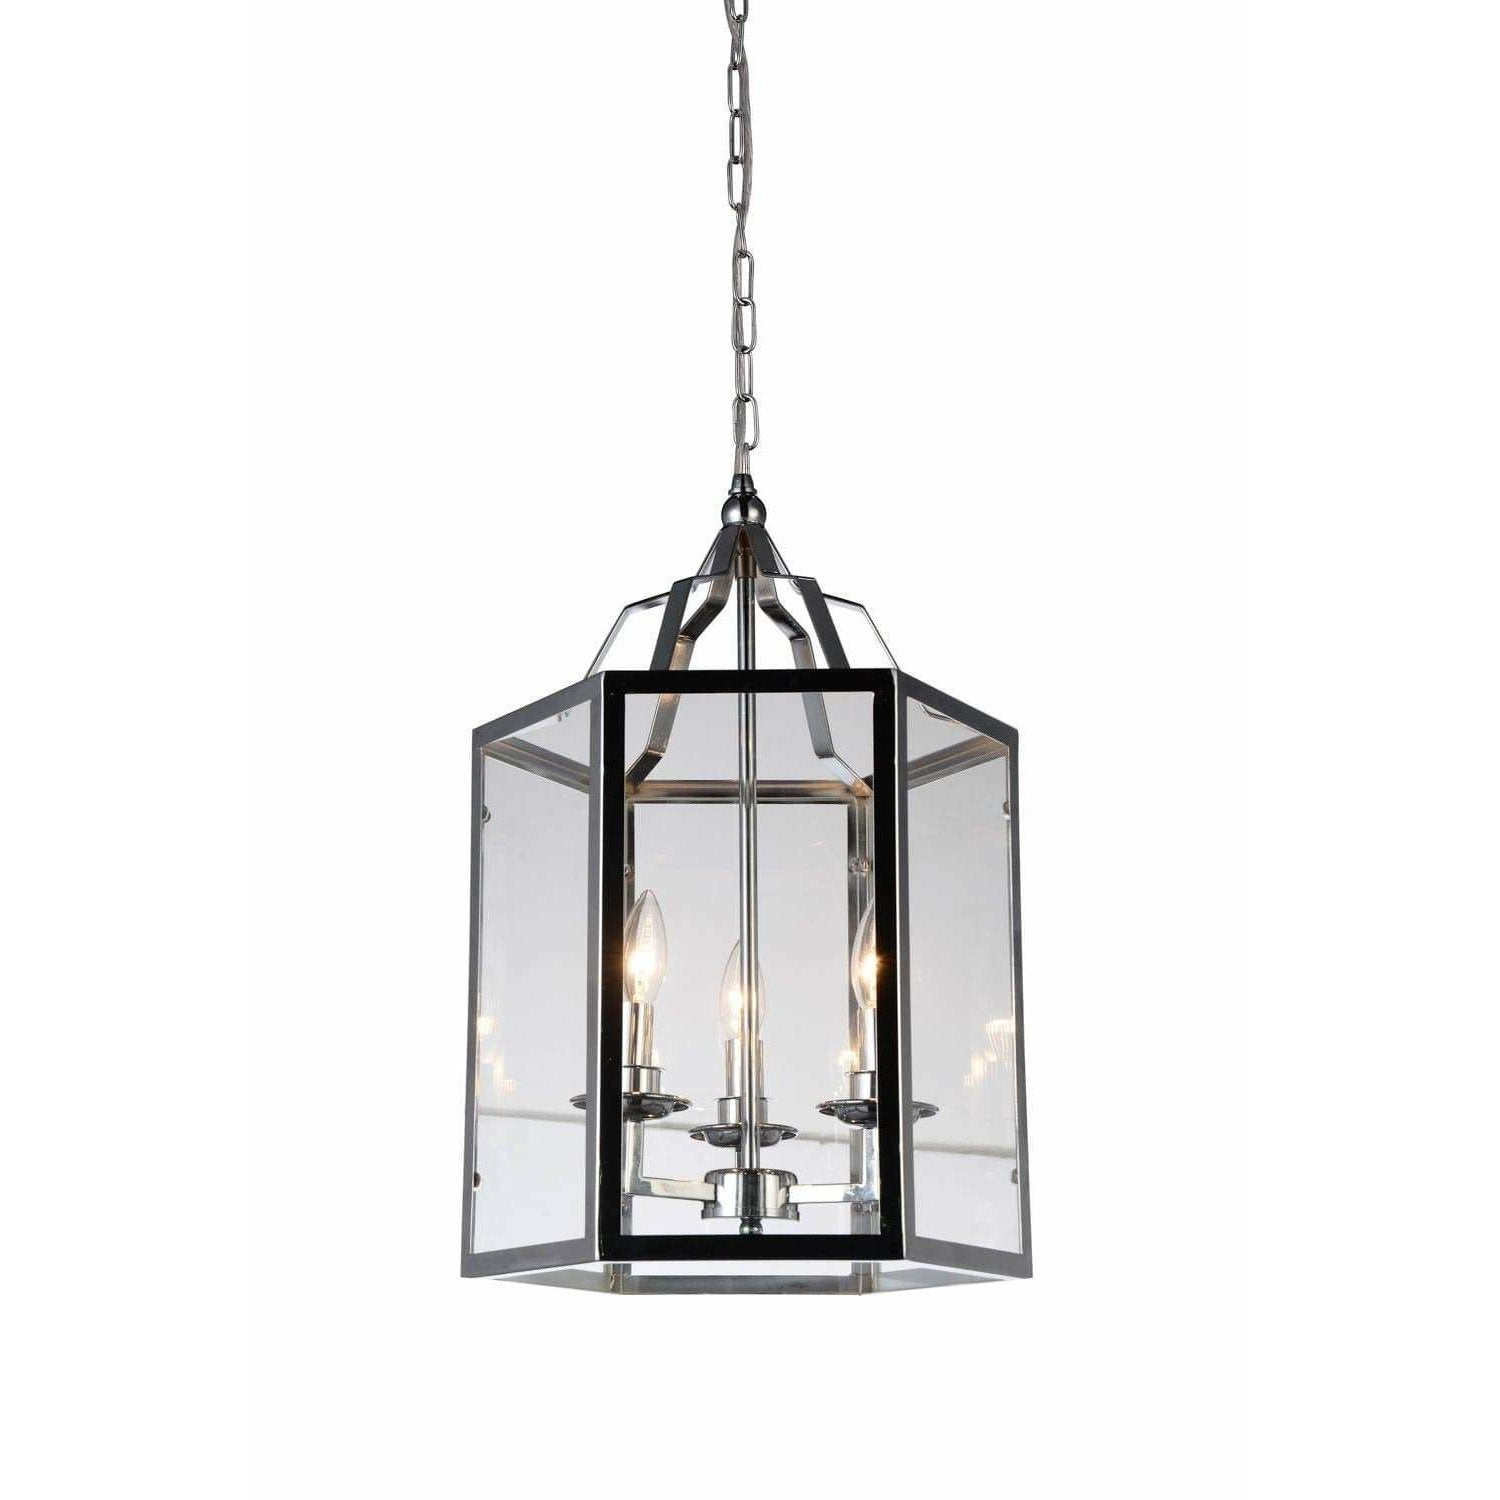 CWI Lighting Pendants Chrome / Clear Desire 3 Light Up Mini Pendant with Chrome finish by CWI Lighting 9647P14-3-601